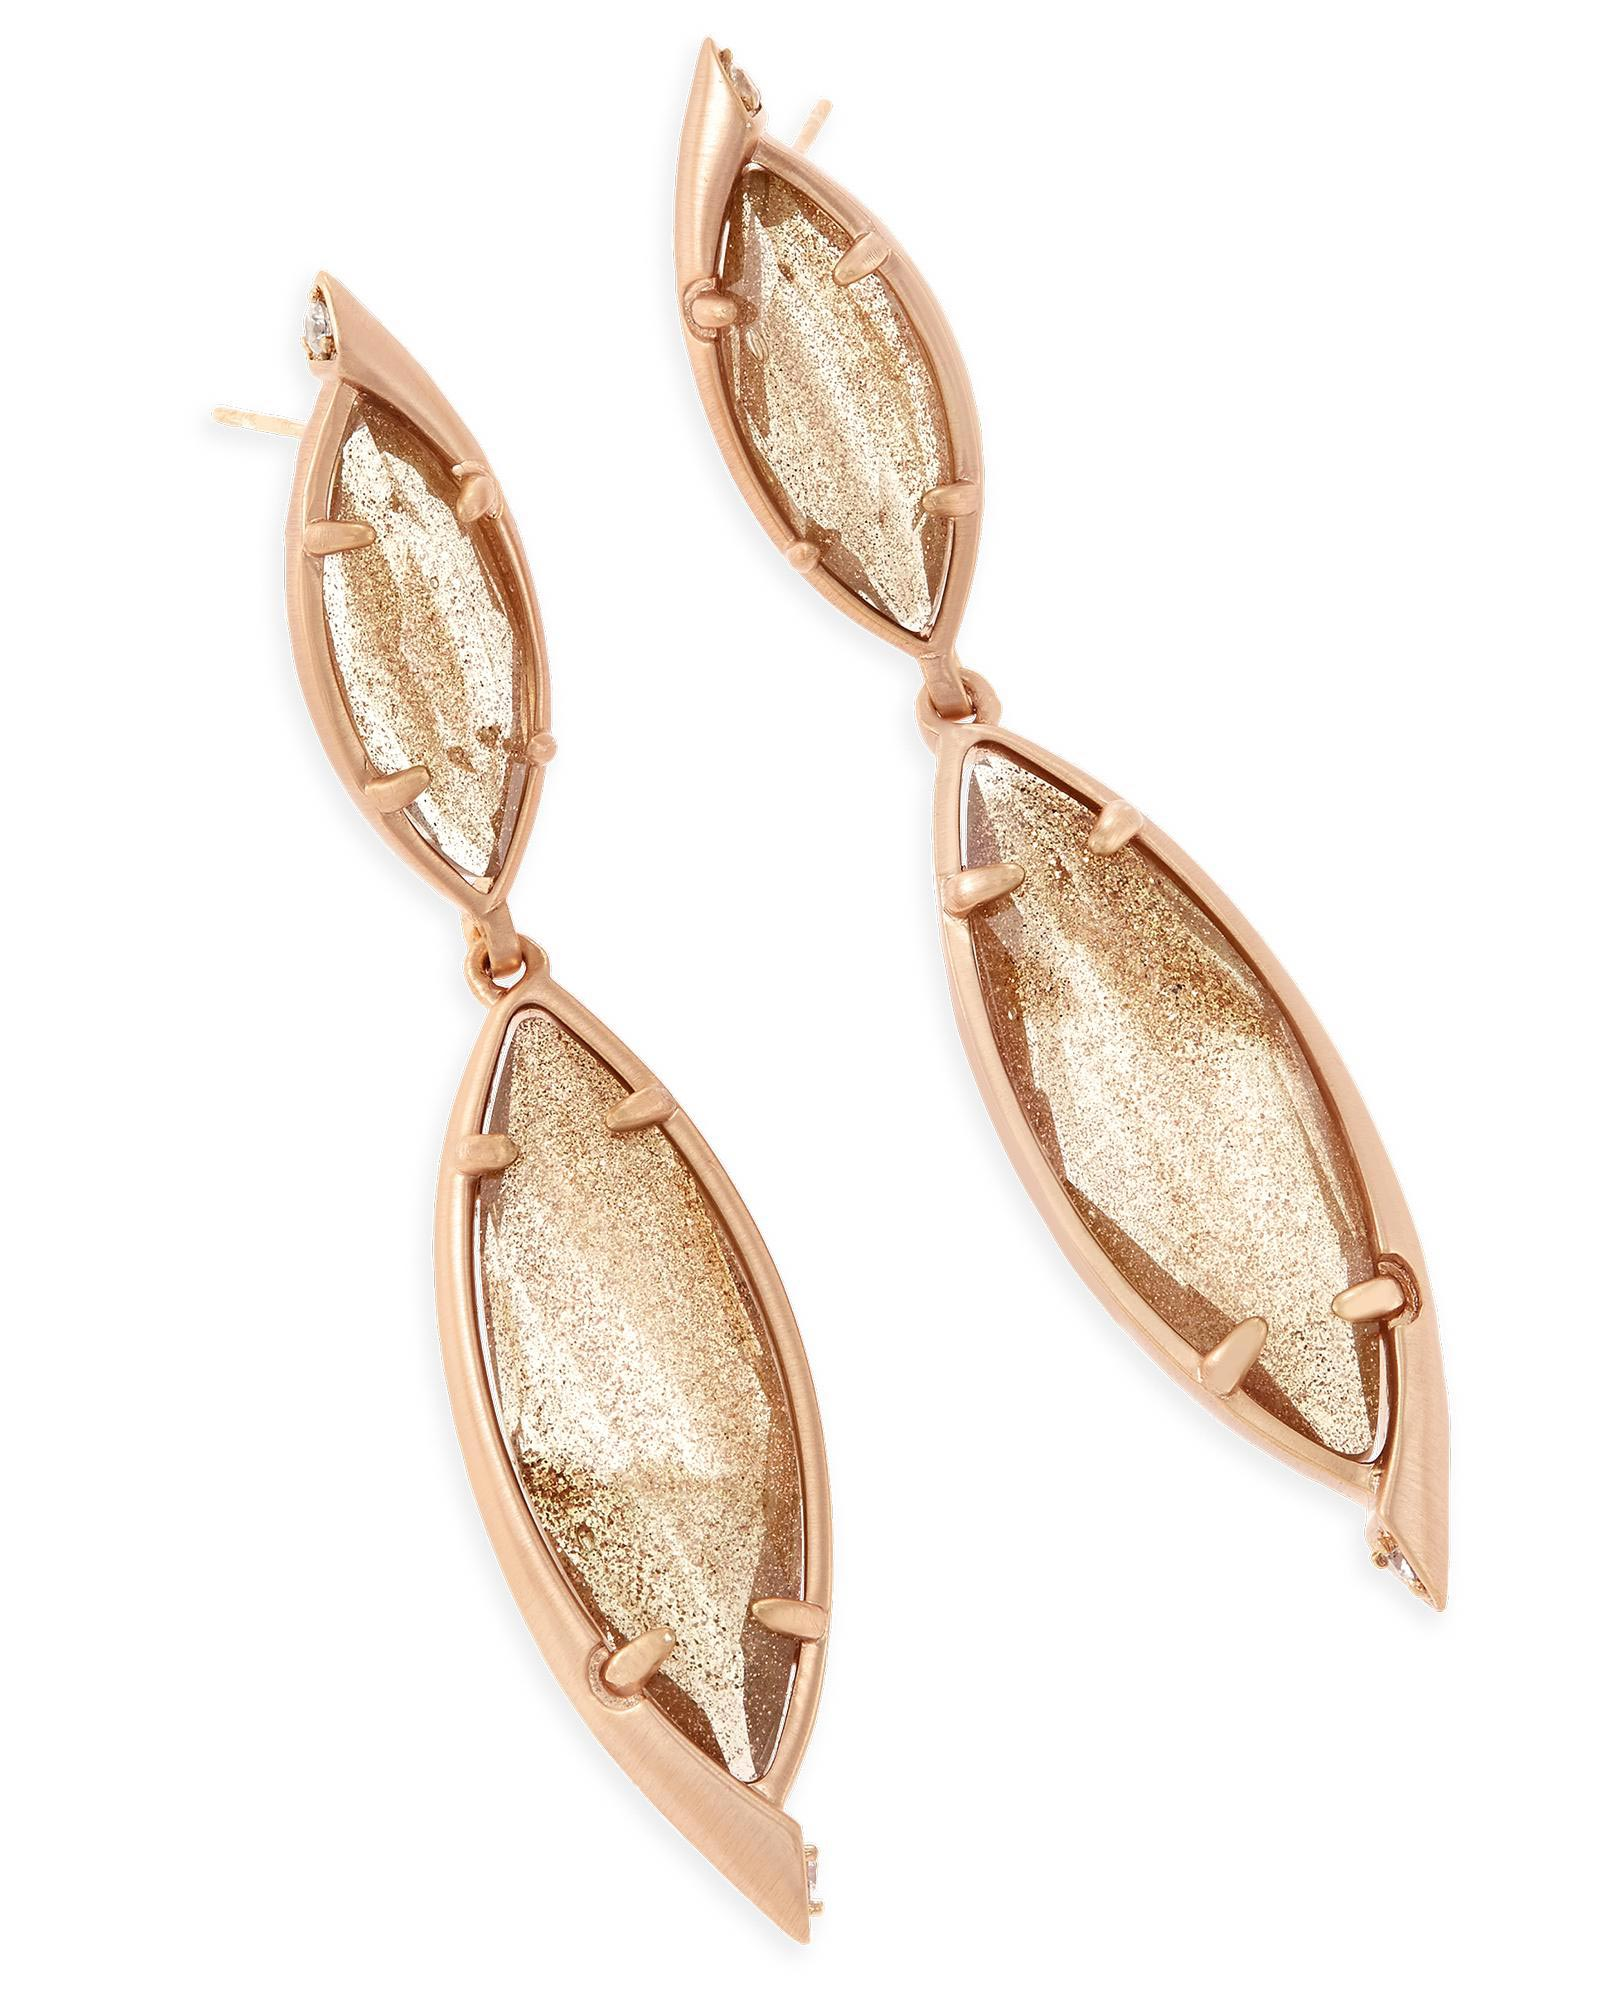 Maisey Statement Earrings in Gold Dusted Glass